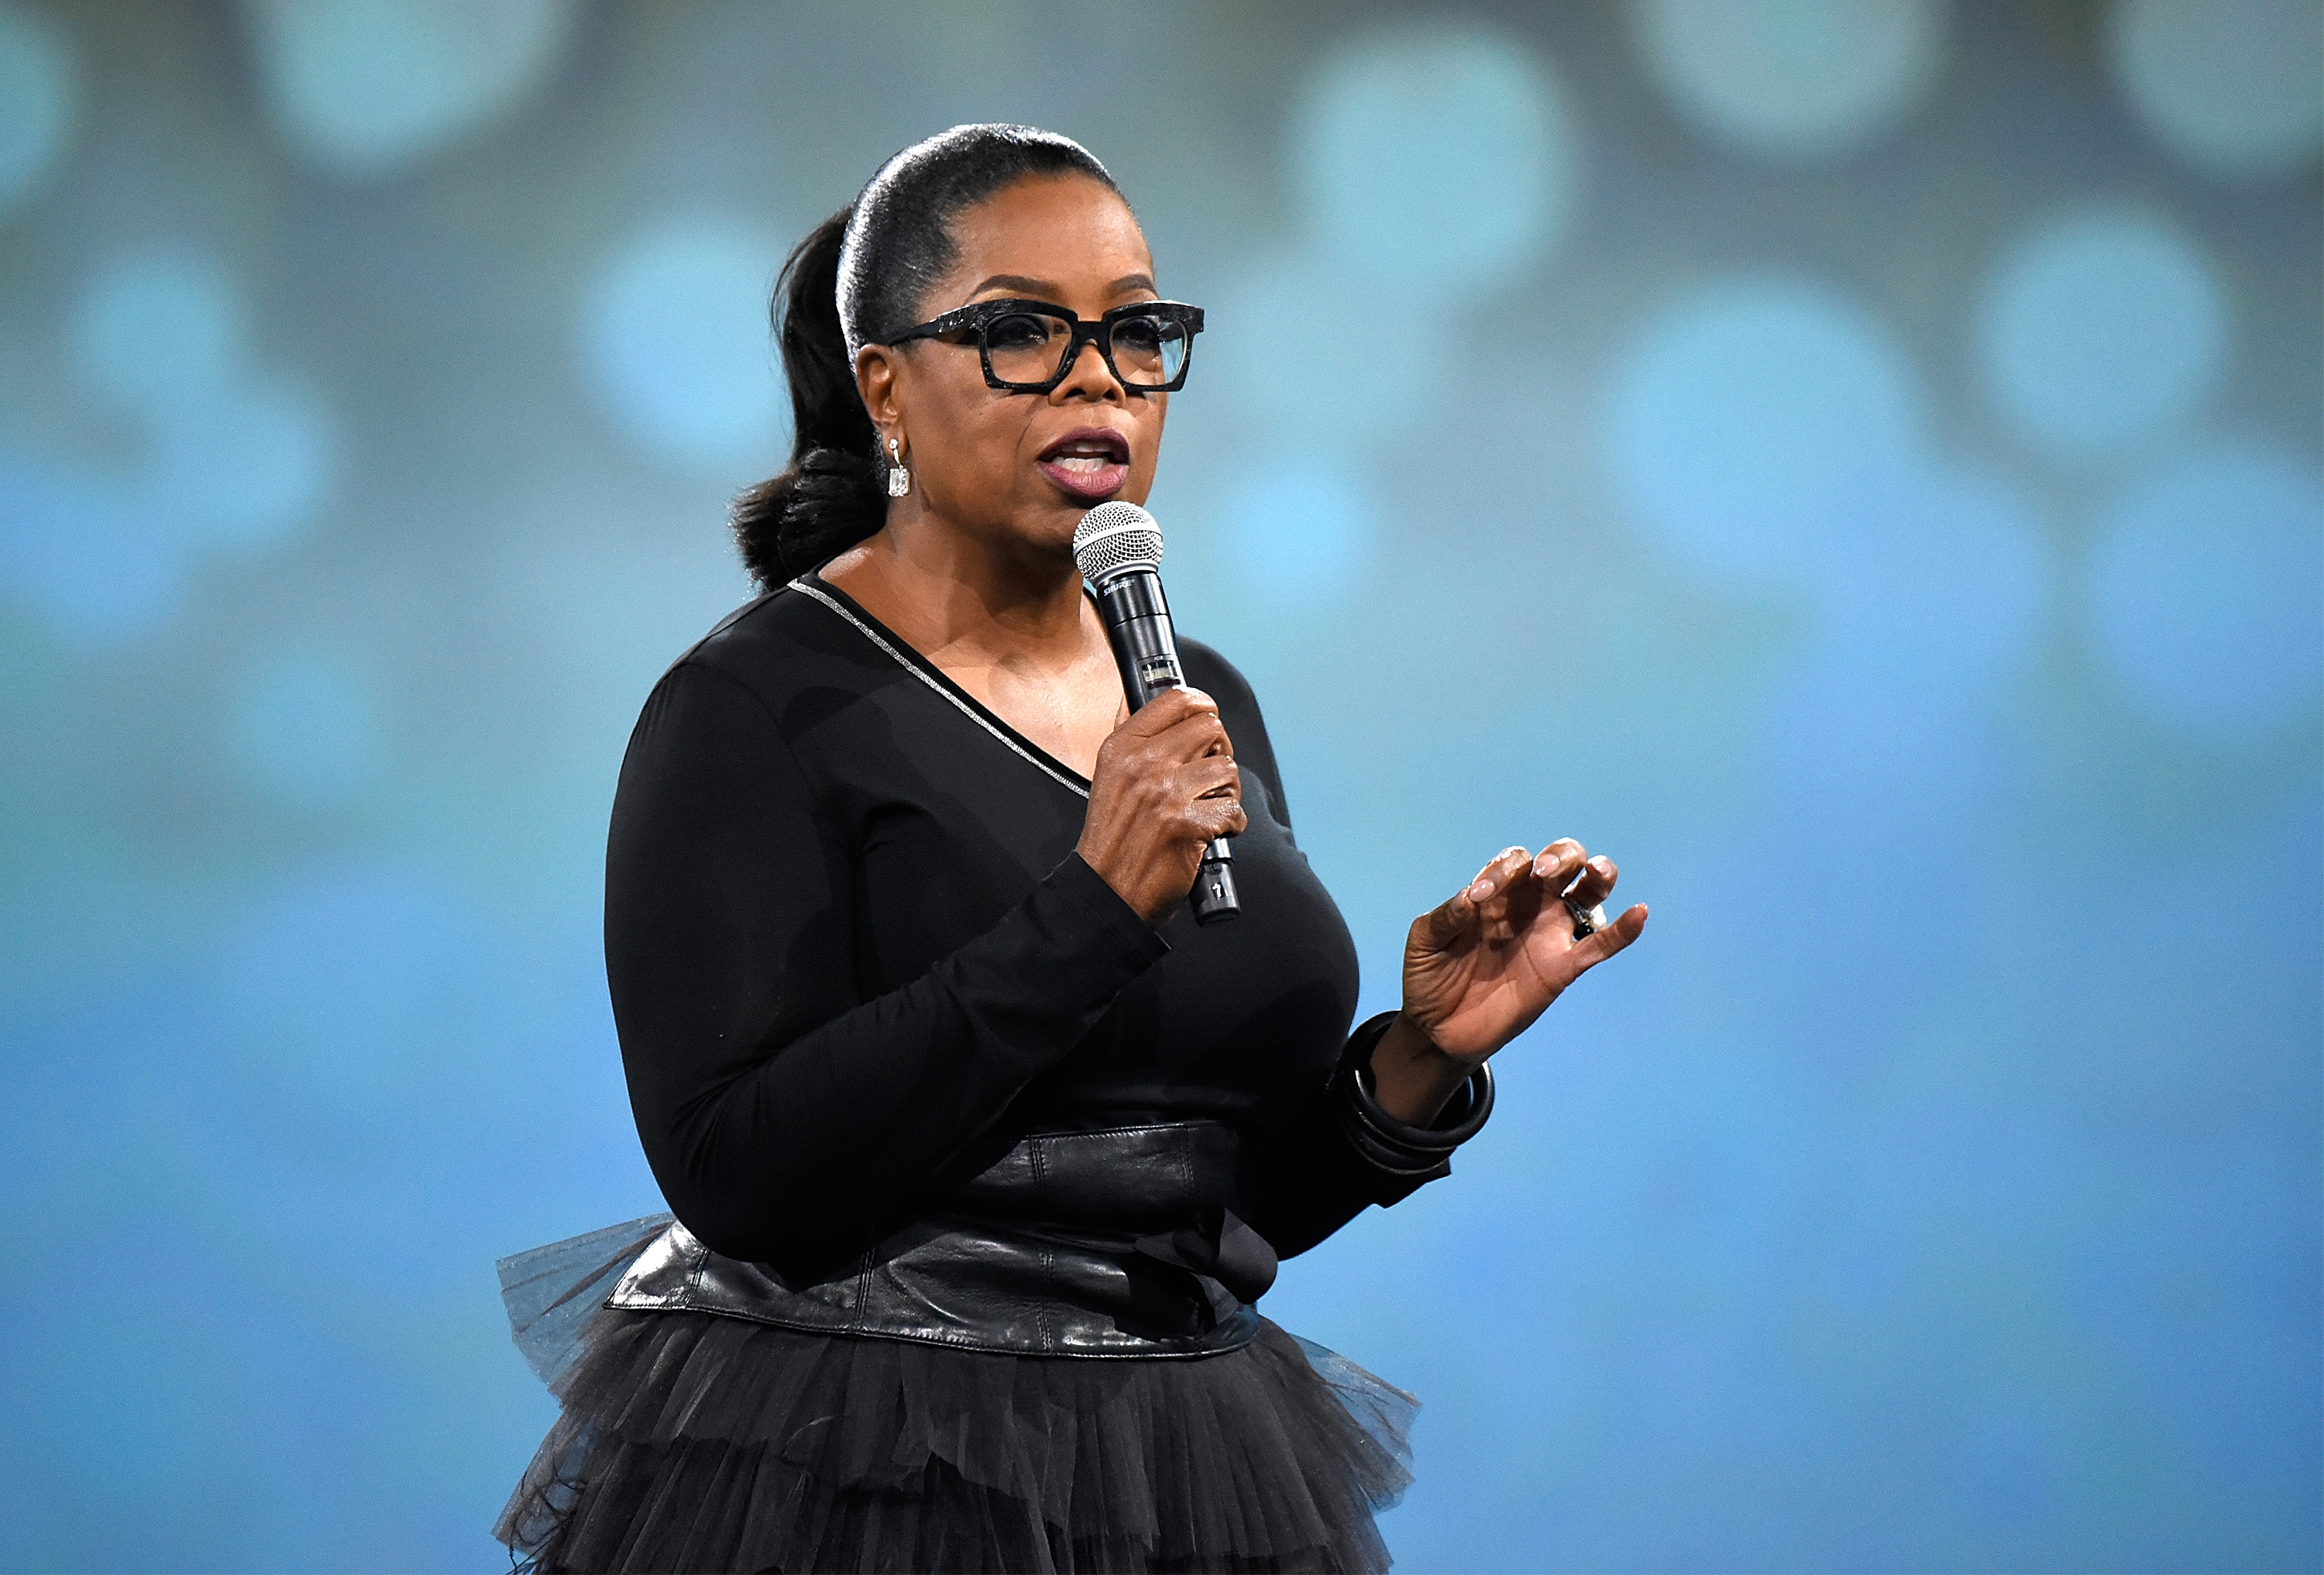 NEW YORK, NY - MAY 14:  Oprah Winfrey speaks on stage during The Robin Hood Foundation's 2018 benefit at Jacob Javitz Center on May 14, 2018 in New York City.  (Photo by Kevin Mazur/Getty Images for Robin Hood)